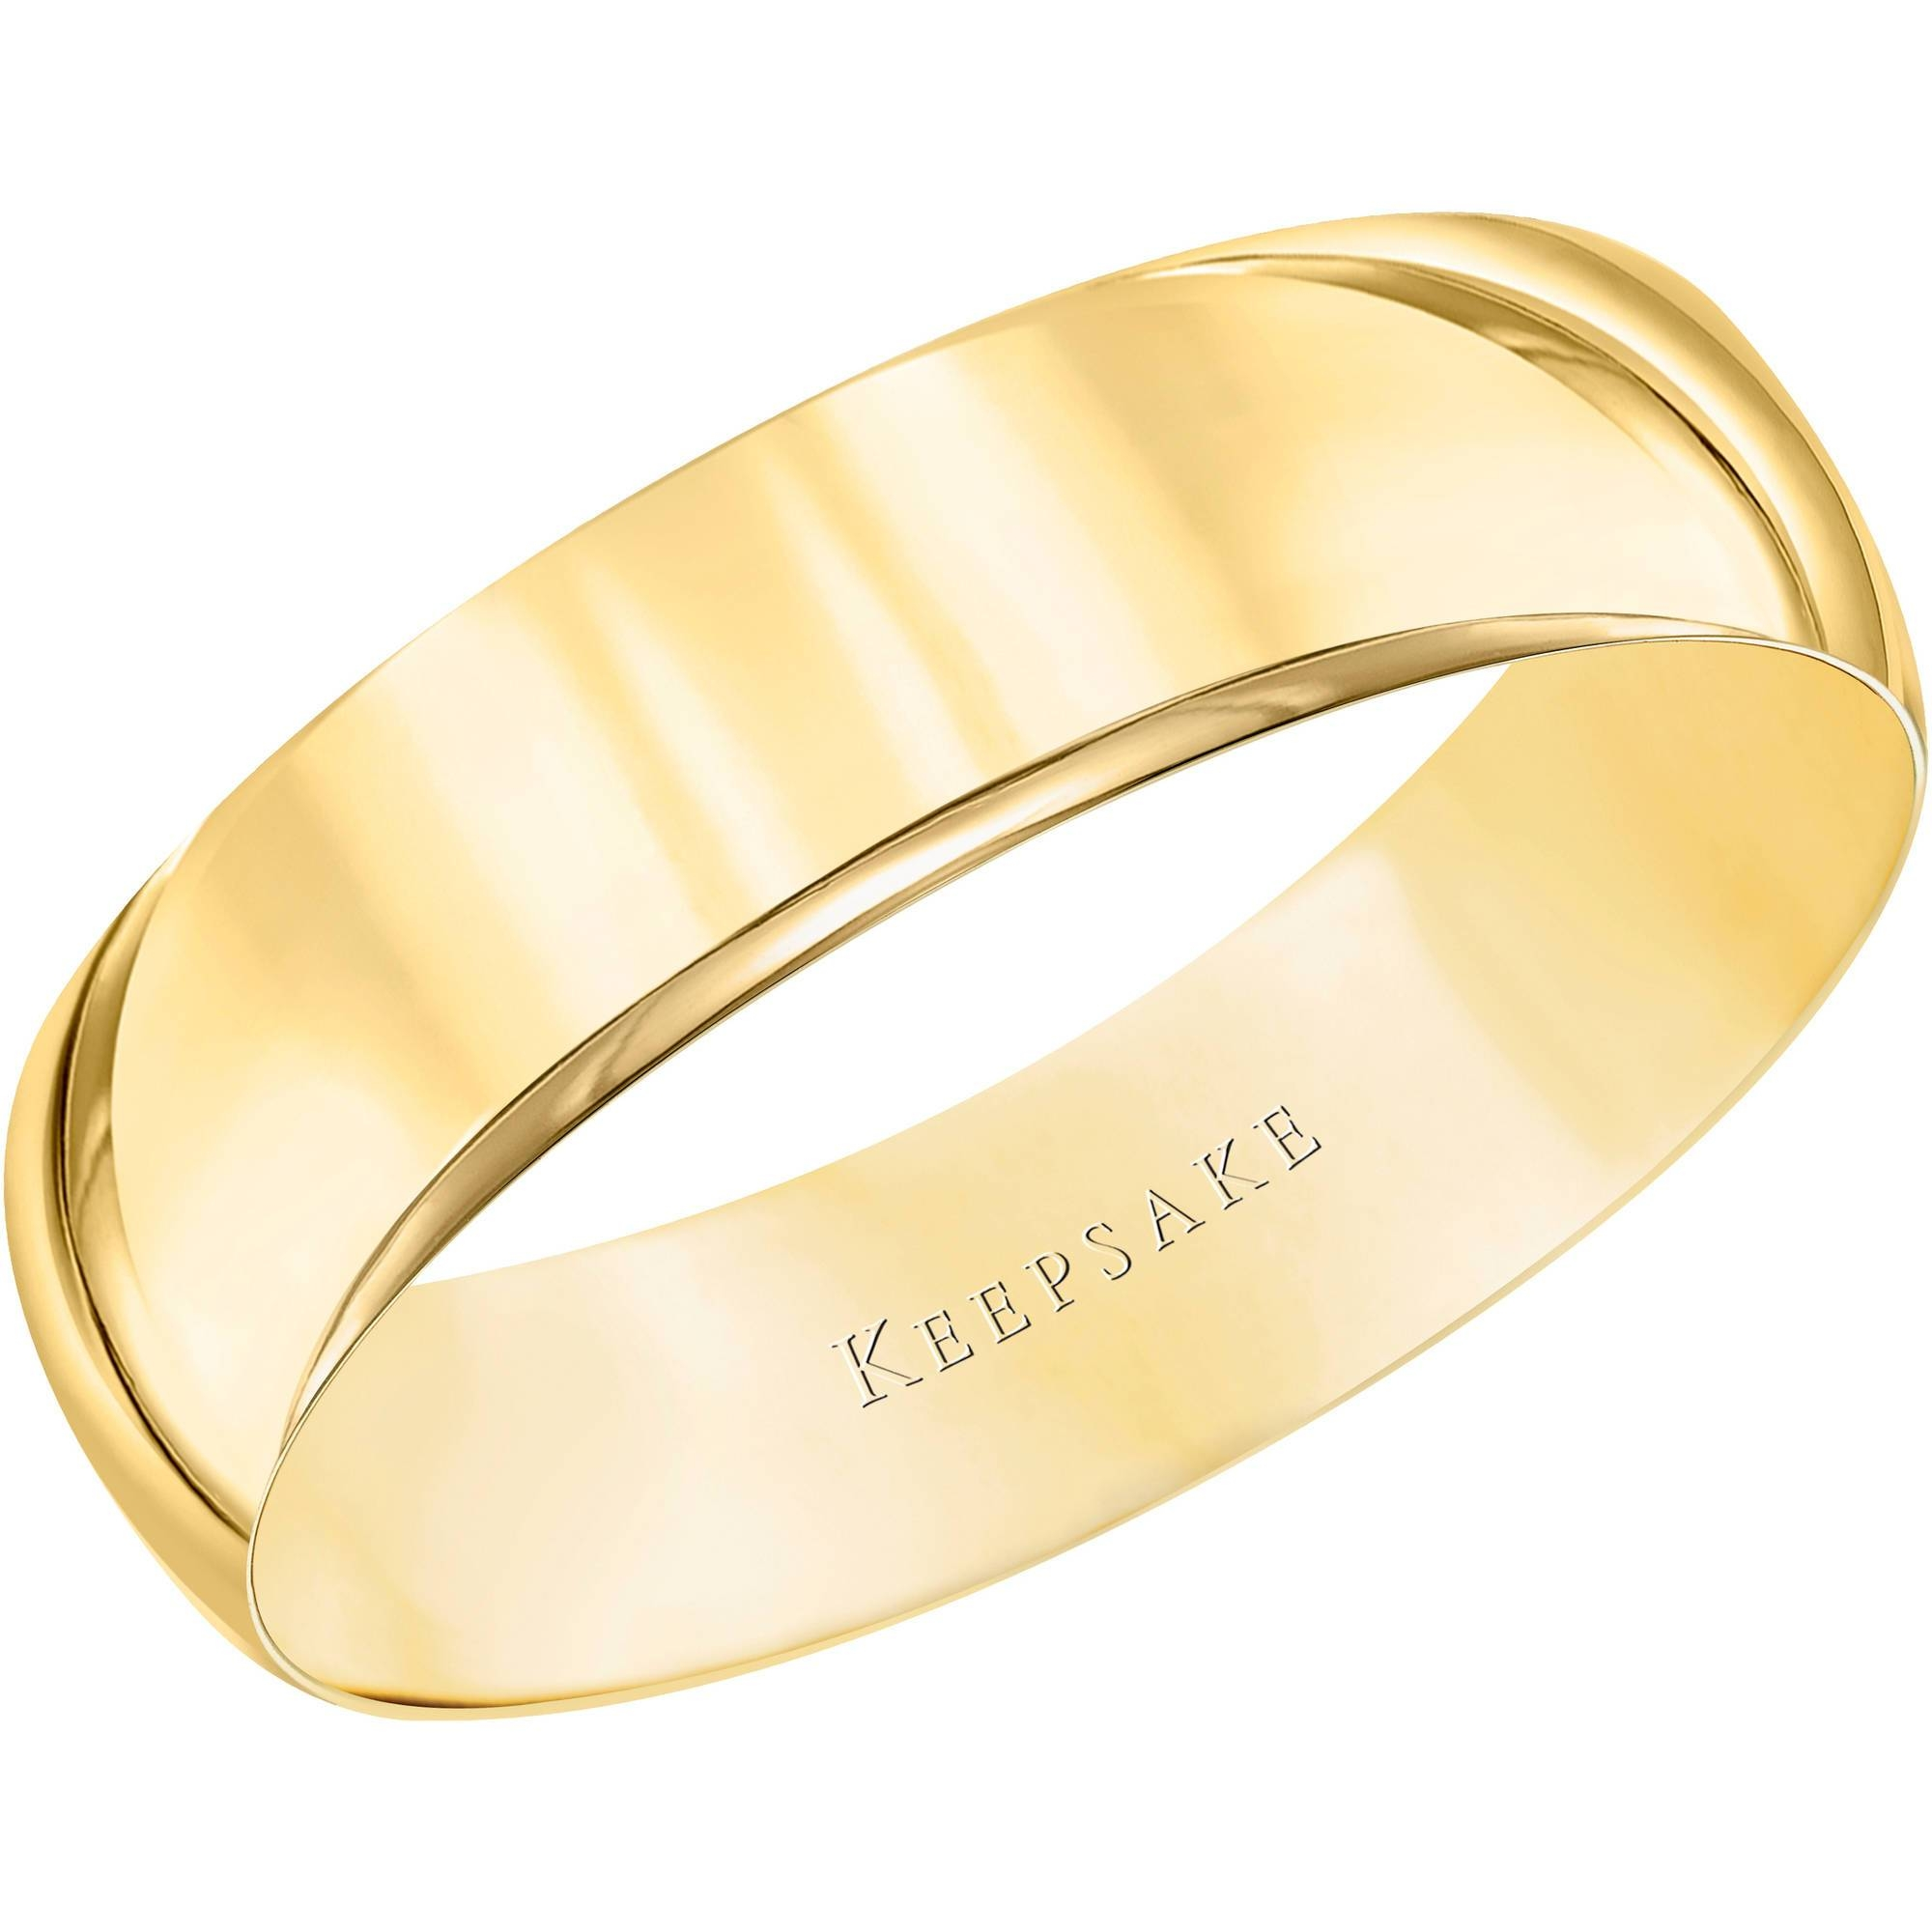 Keepsake 10kt Yellow Gold Wedding Band With High Polish Finish In Keepsake Wedding Bands (View 3 of 15)